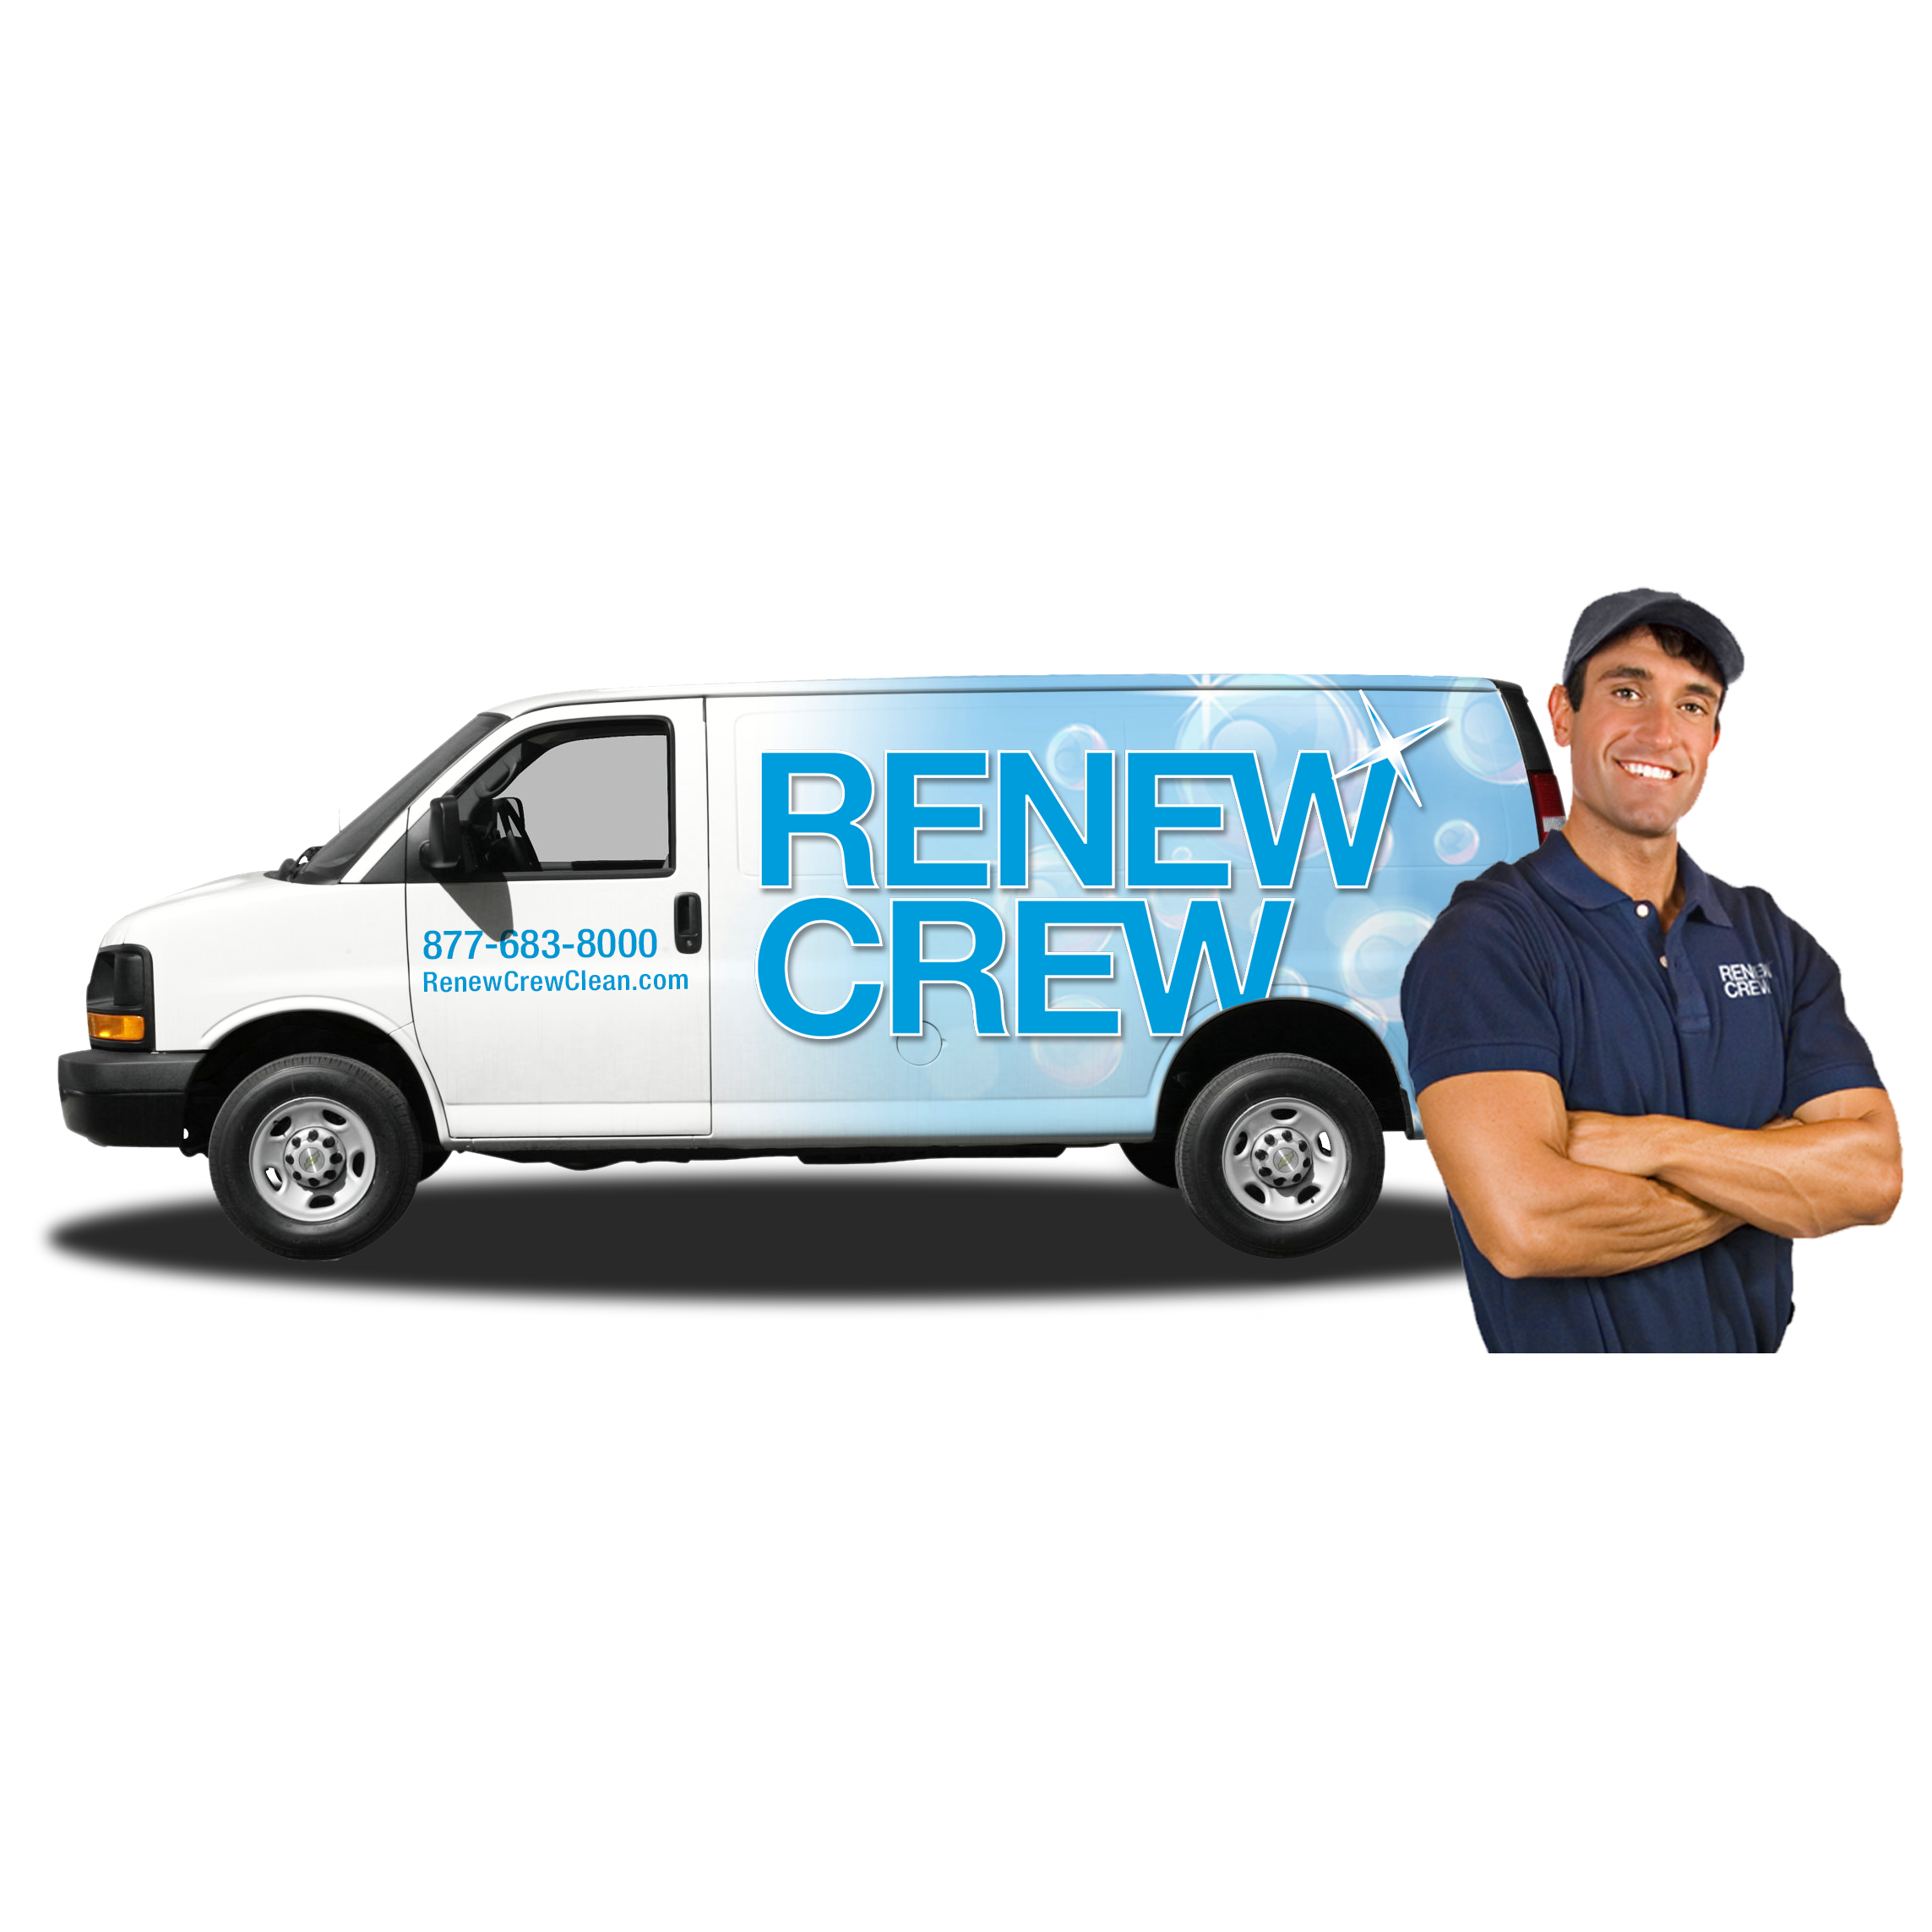 Renew Crew of Coral Springs